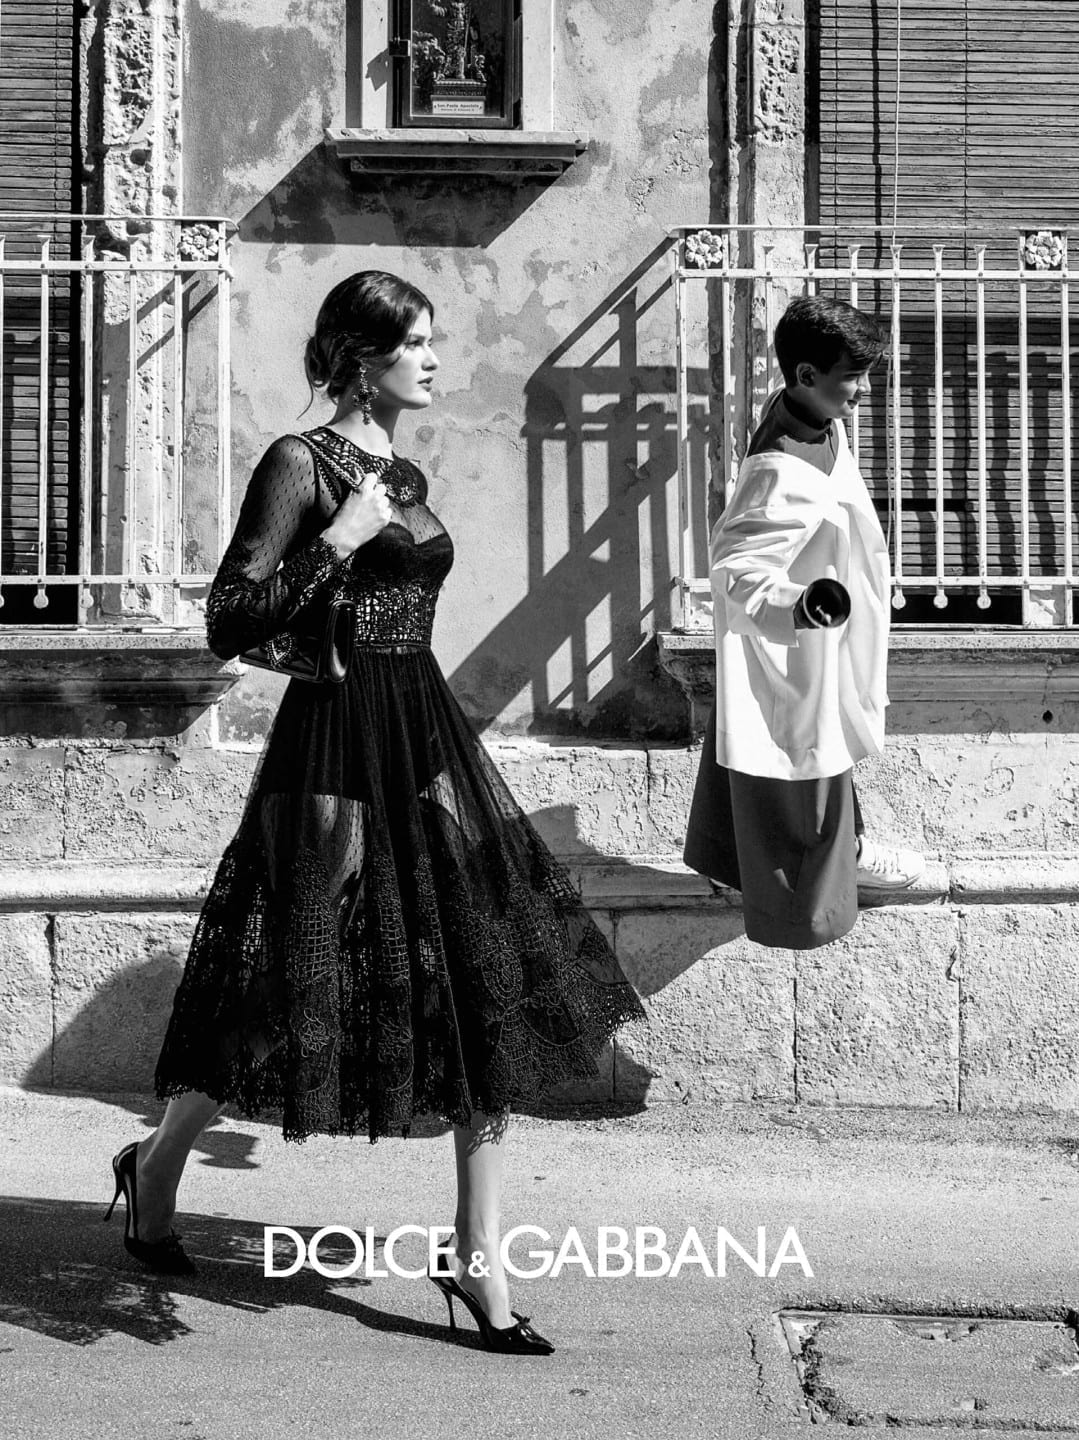 The Dolce & Gabbana SS20 Collection Is Irresistible!